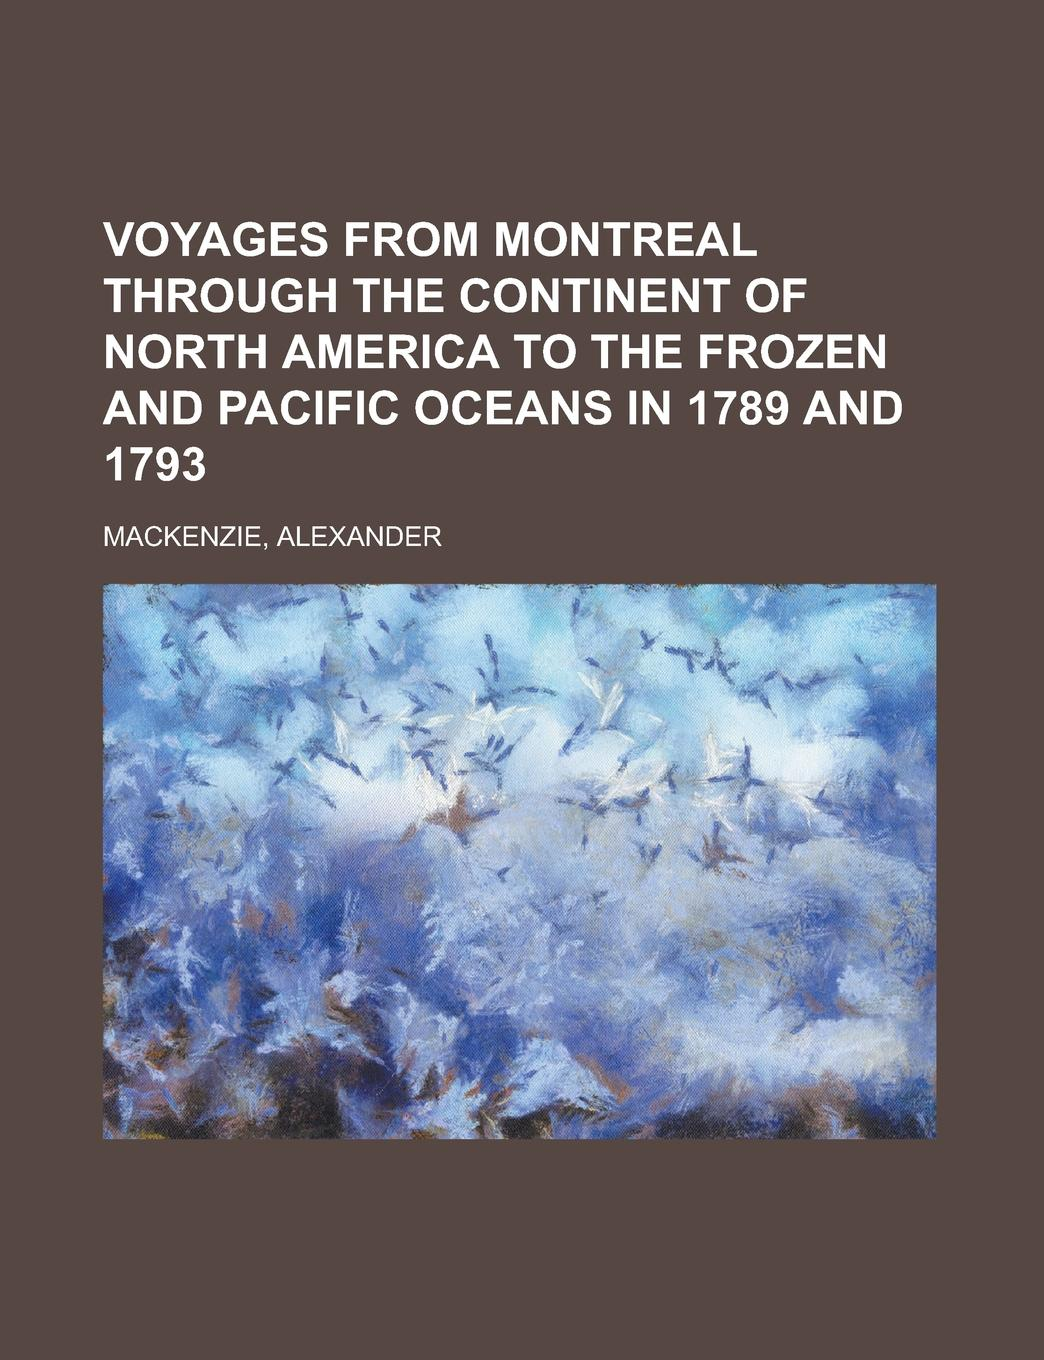 Alexander Mackenzie Voyages from Montreal Through the Continent of North America to the Frozen and Pacific Oceans in 1789 and 1793 alexander mackenzie voyages from montreal through the continent of north america to the frozen and pacific oceans in 1789 and 1793